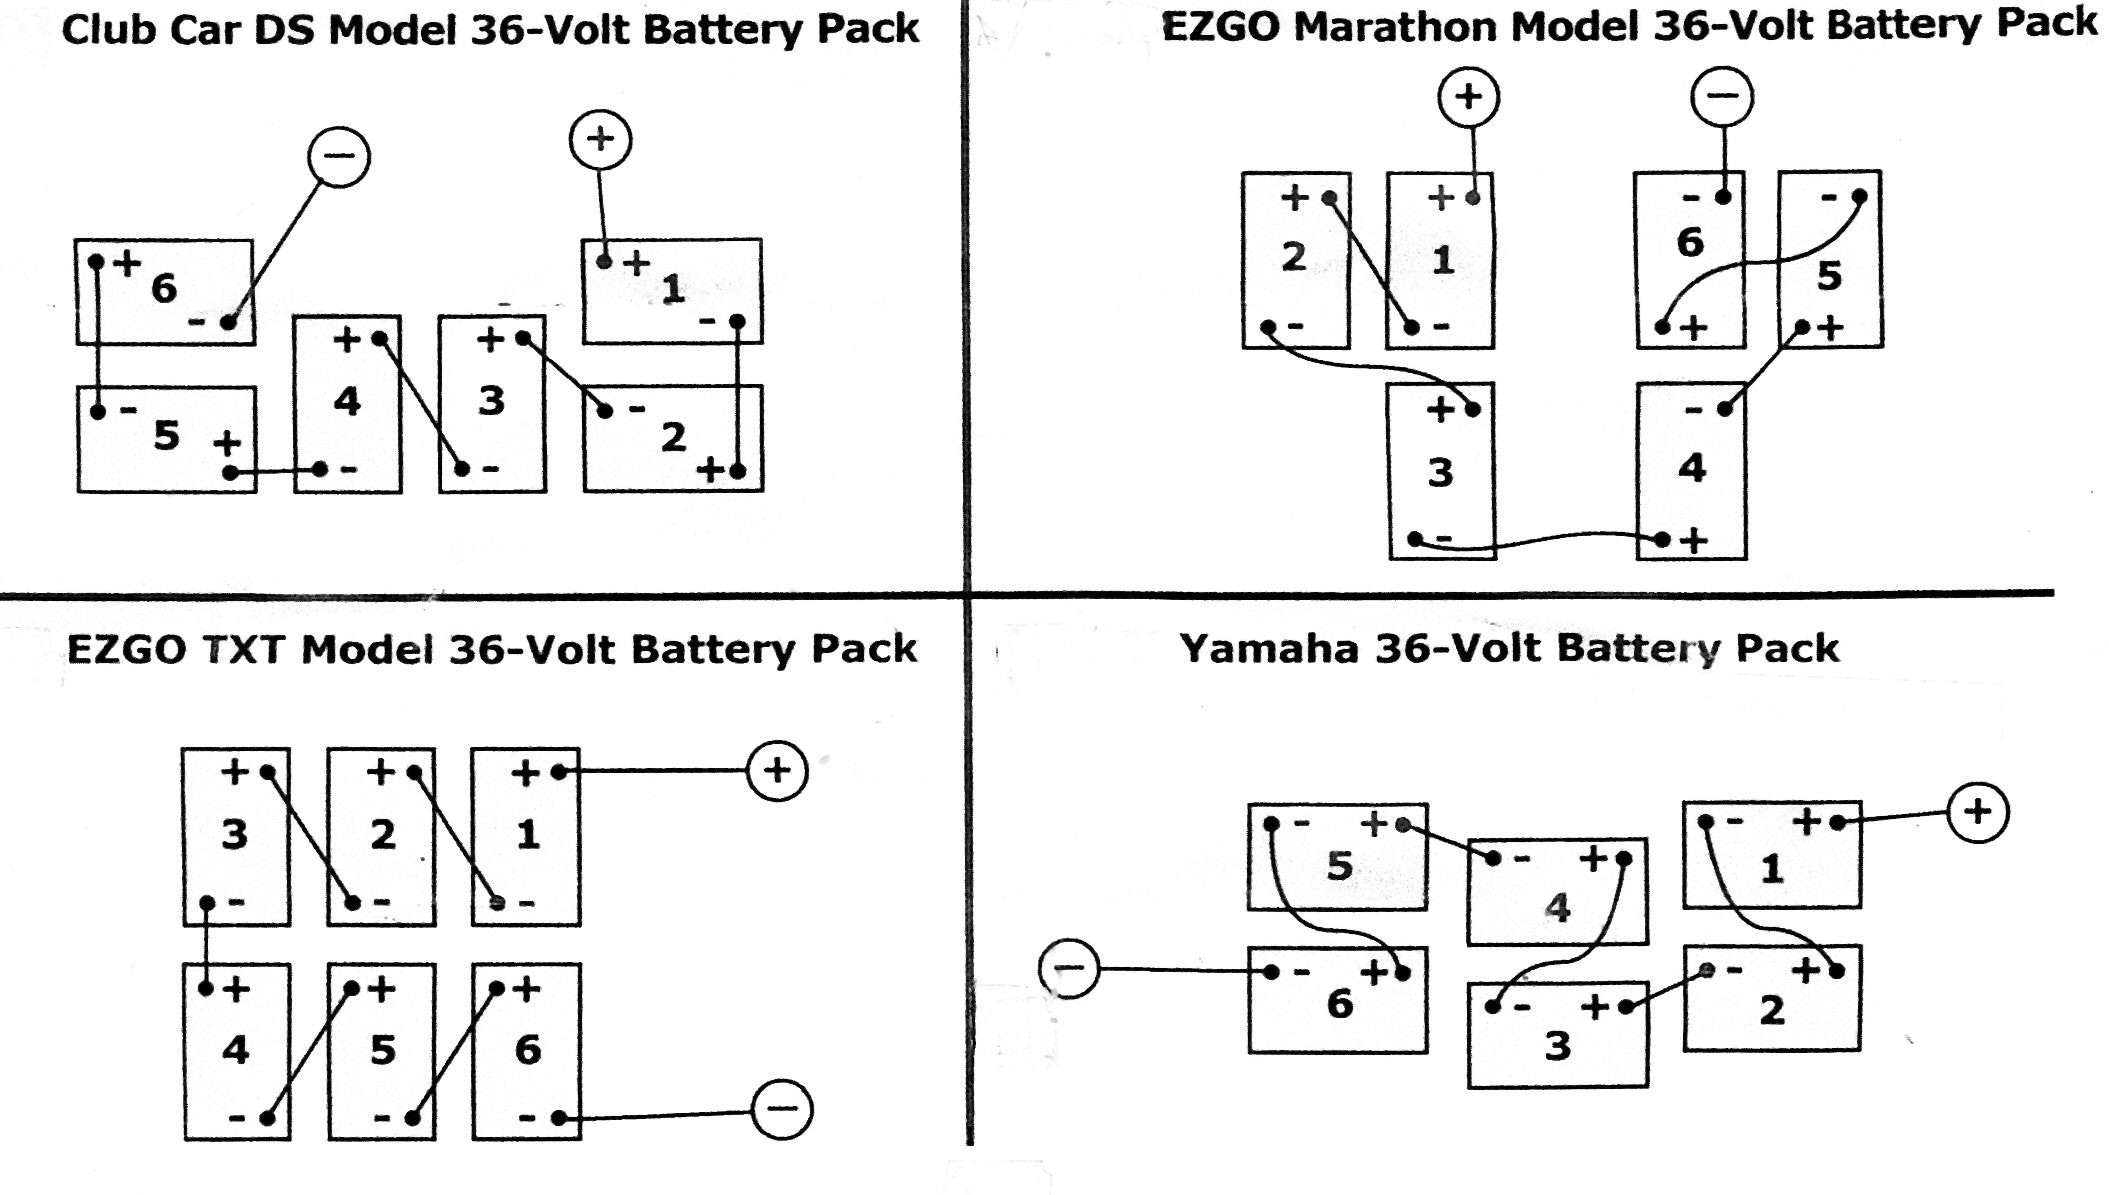 yamaha golf cart battery wiring diagram Download-Wiring Diagrams For Yamaha Golf Carts Refrence Ez. DOWNLOAD. Wiring Diagram ...